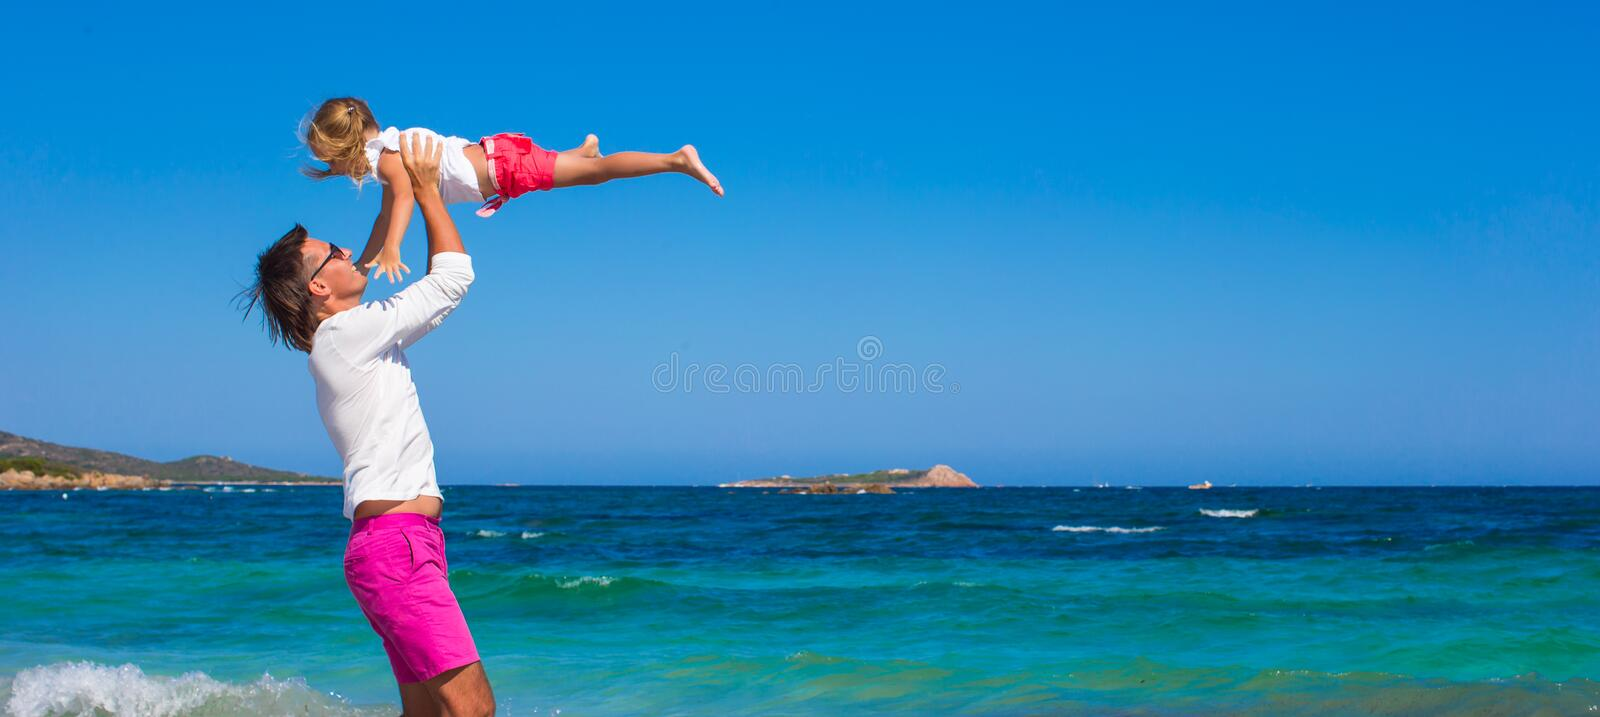 Little girl and dad have fun during tropical beach royalty free stock photography